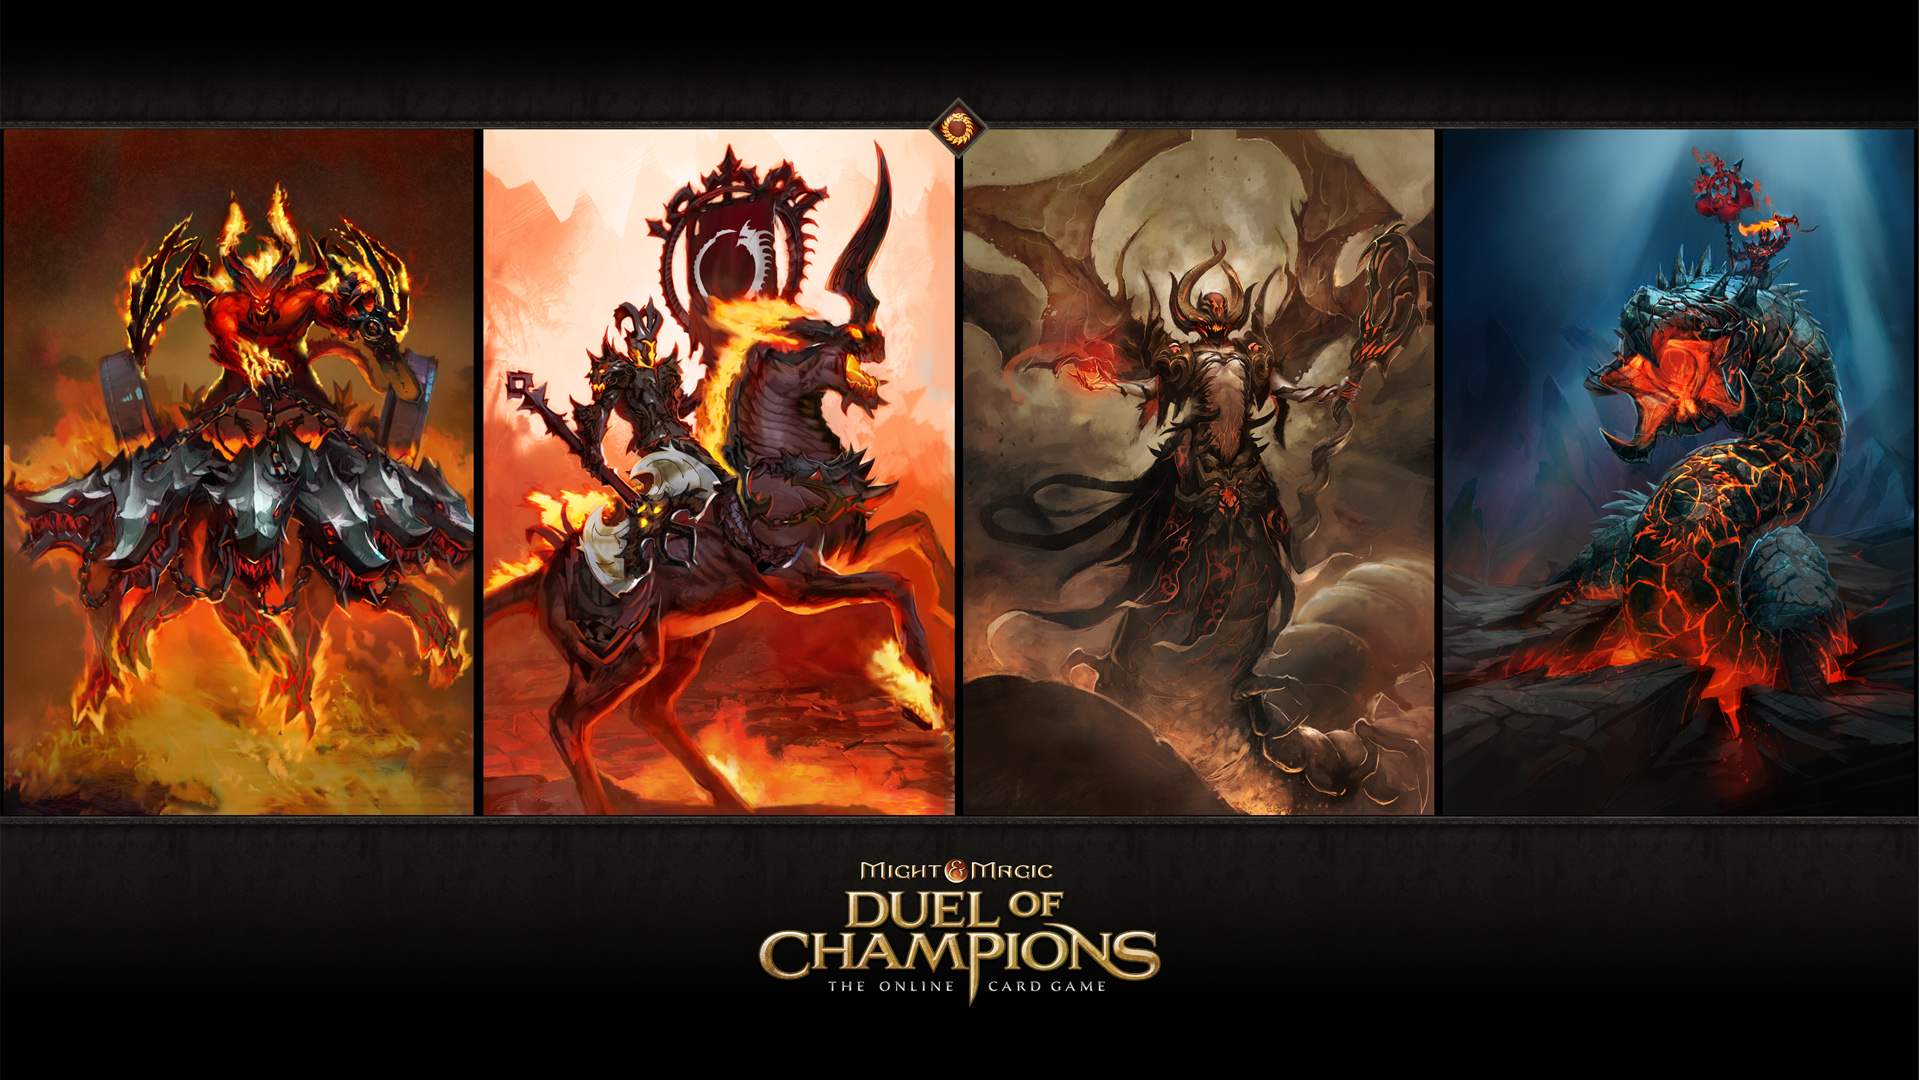 Duel_of_Champions-5